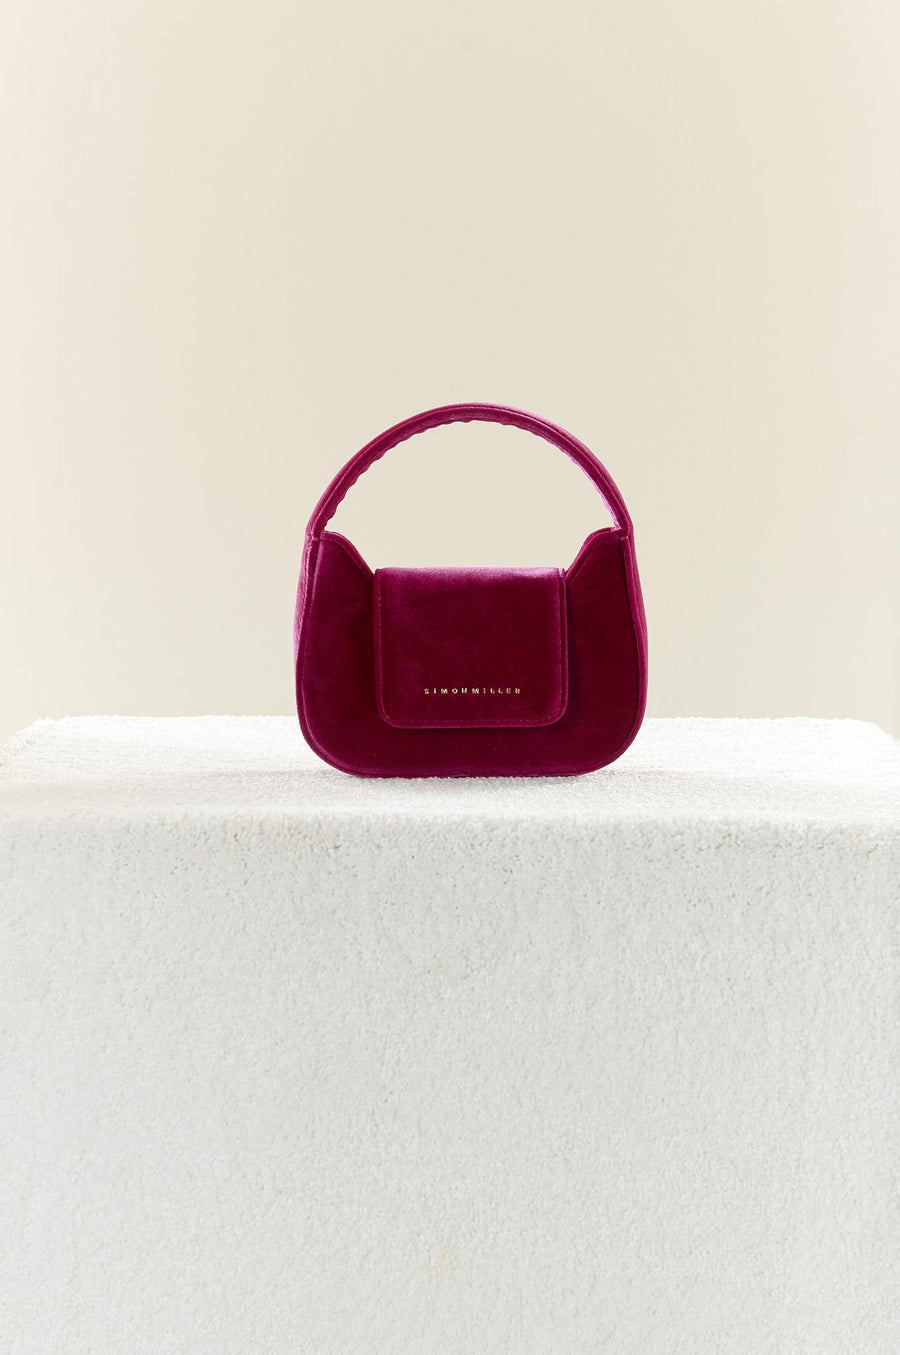 Mini Retro Bag in Magenta